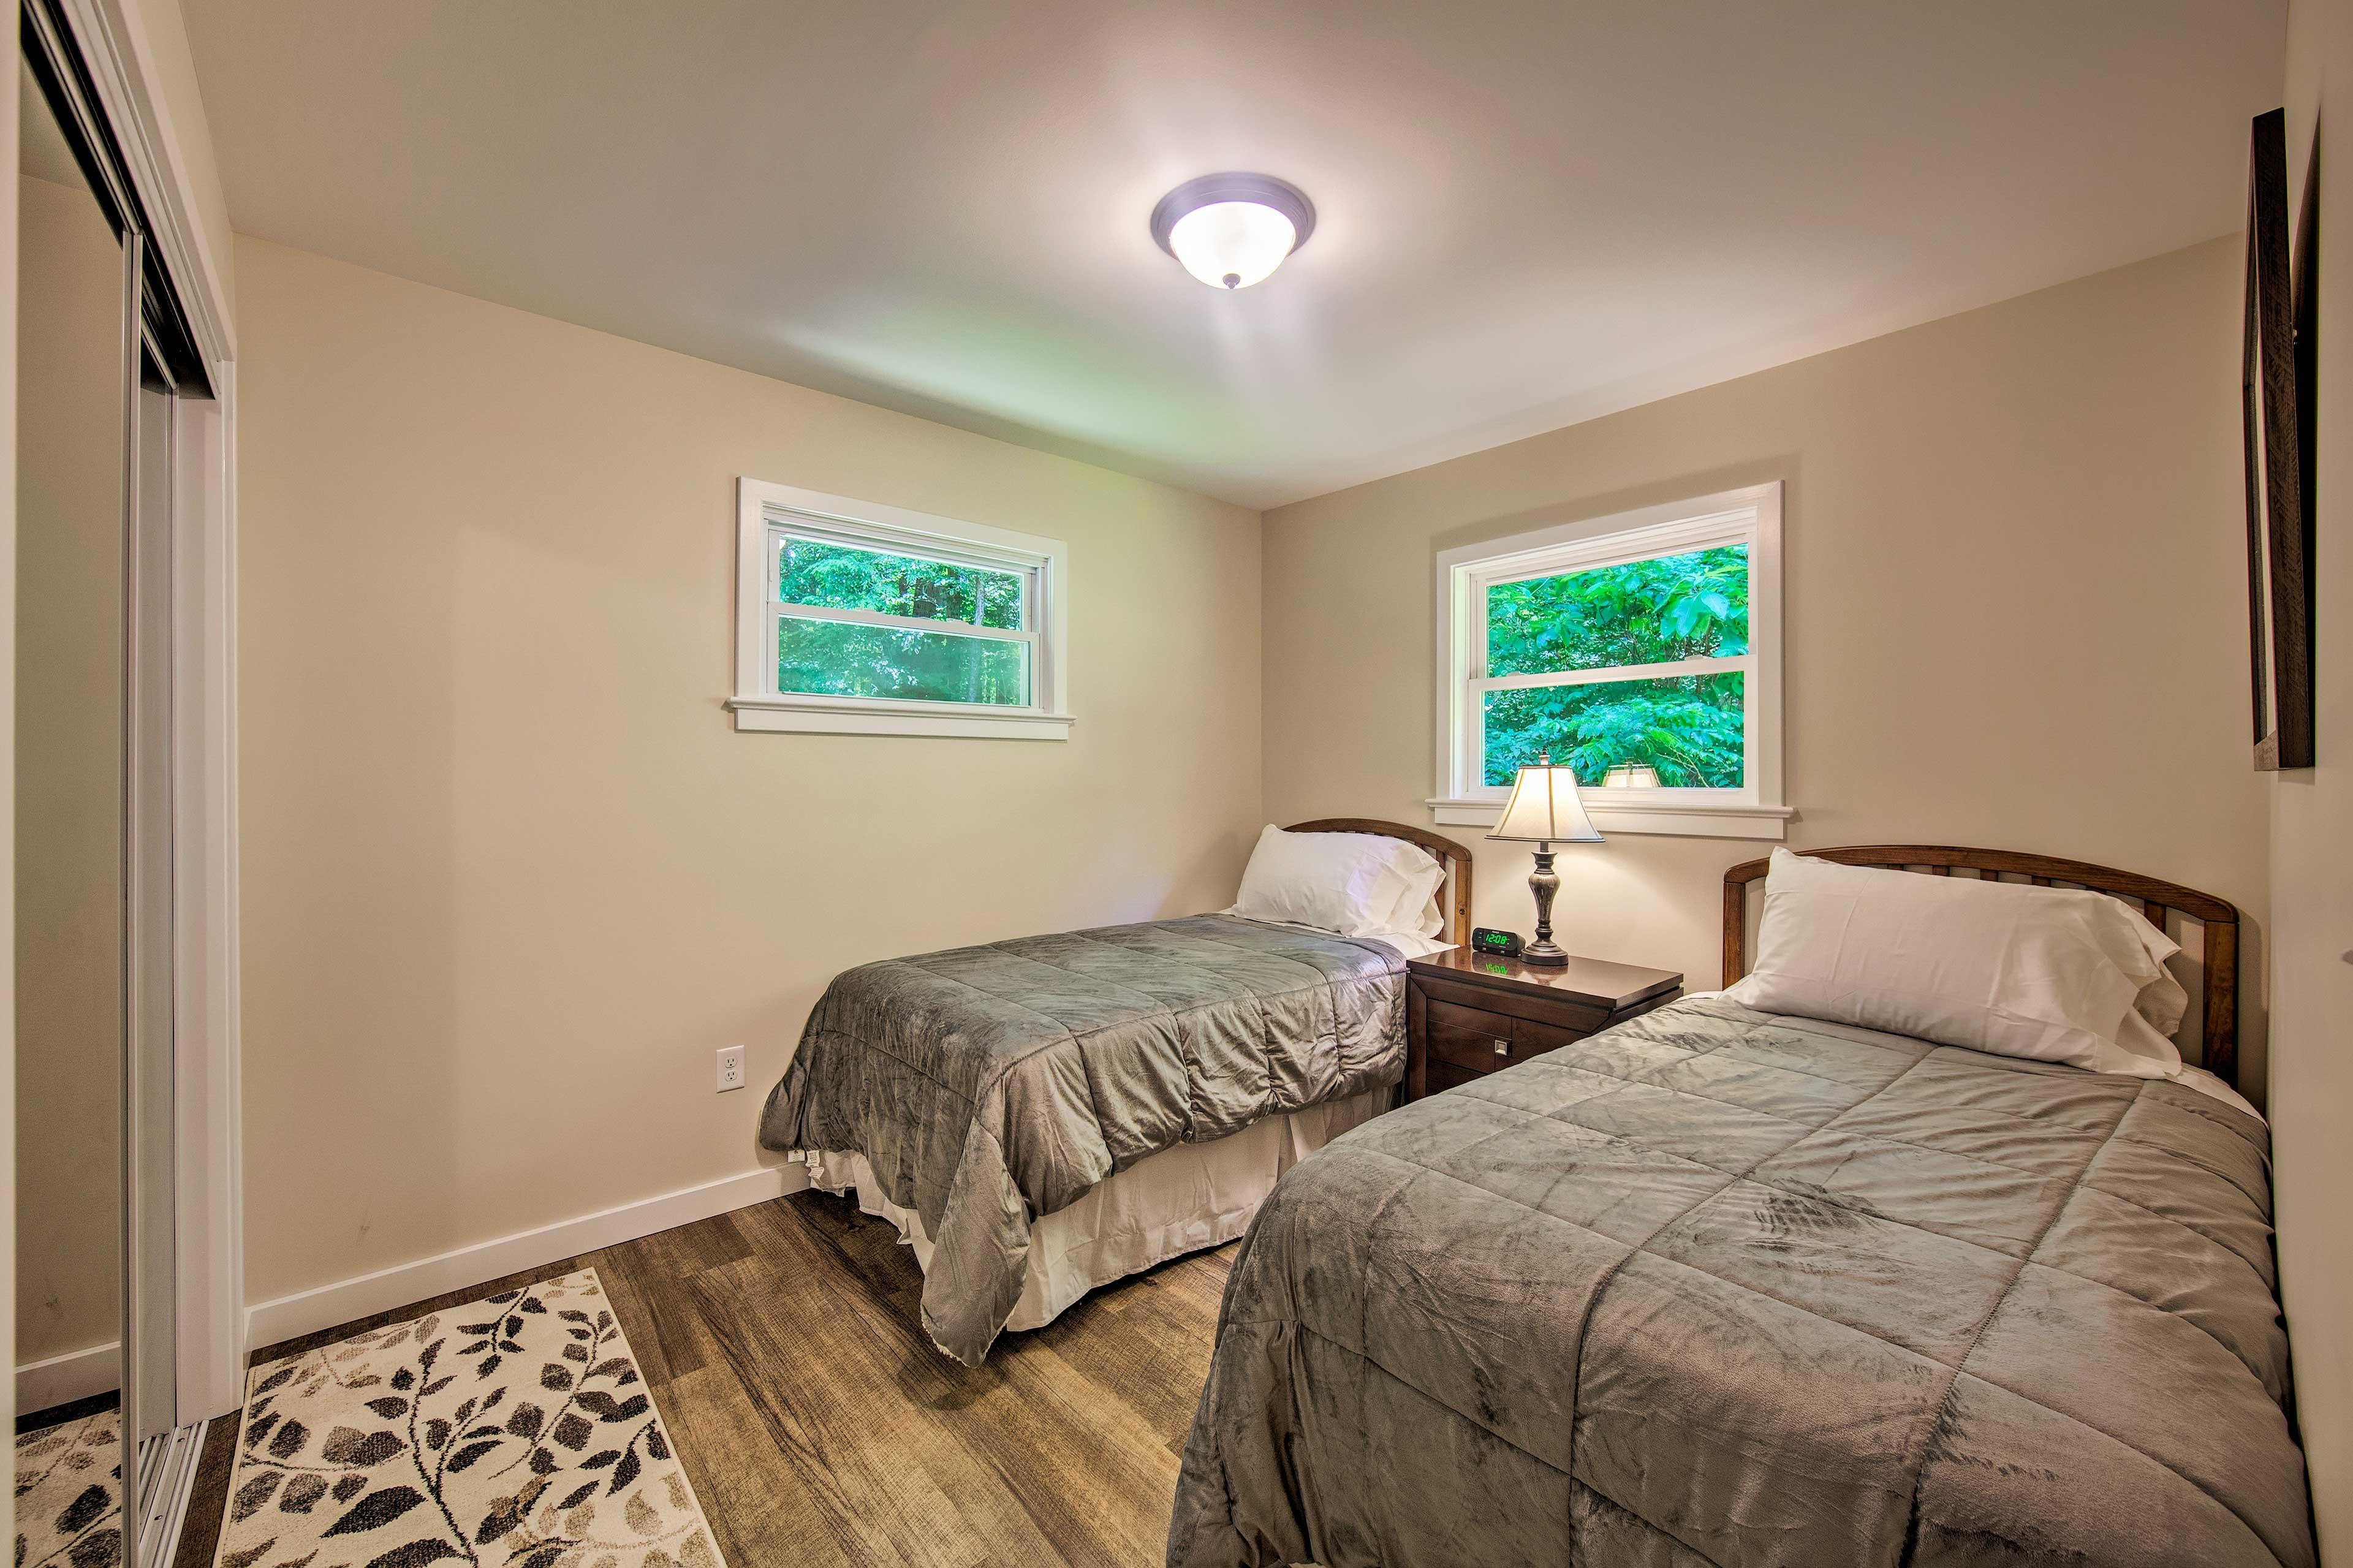 Two guests can stay in this room with 2 twin-sized beds.